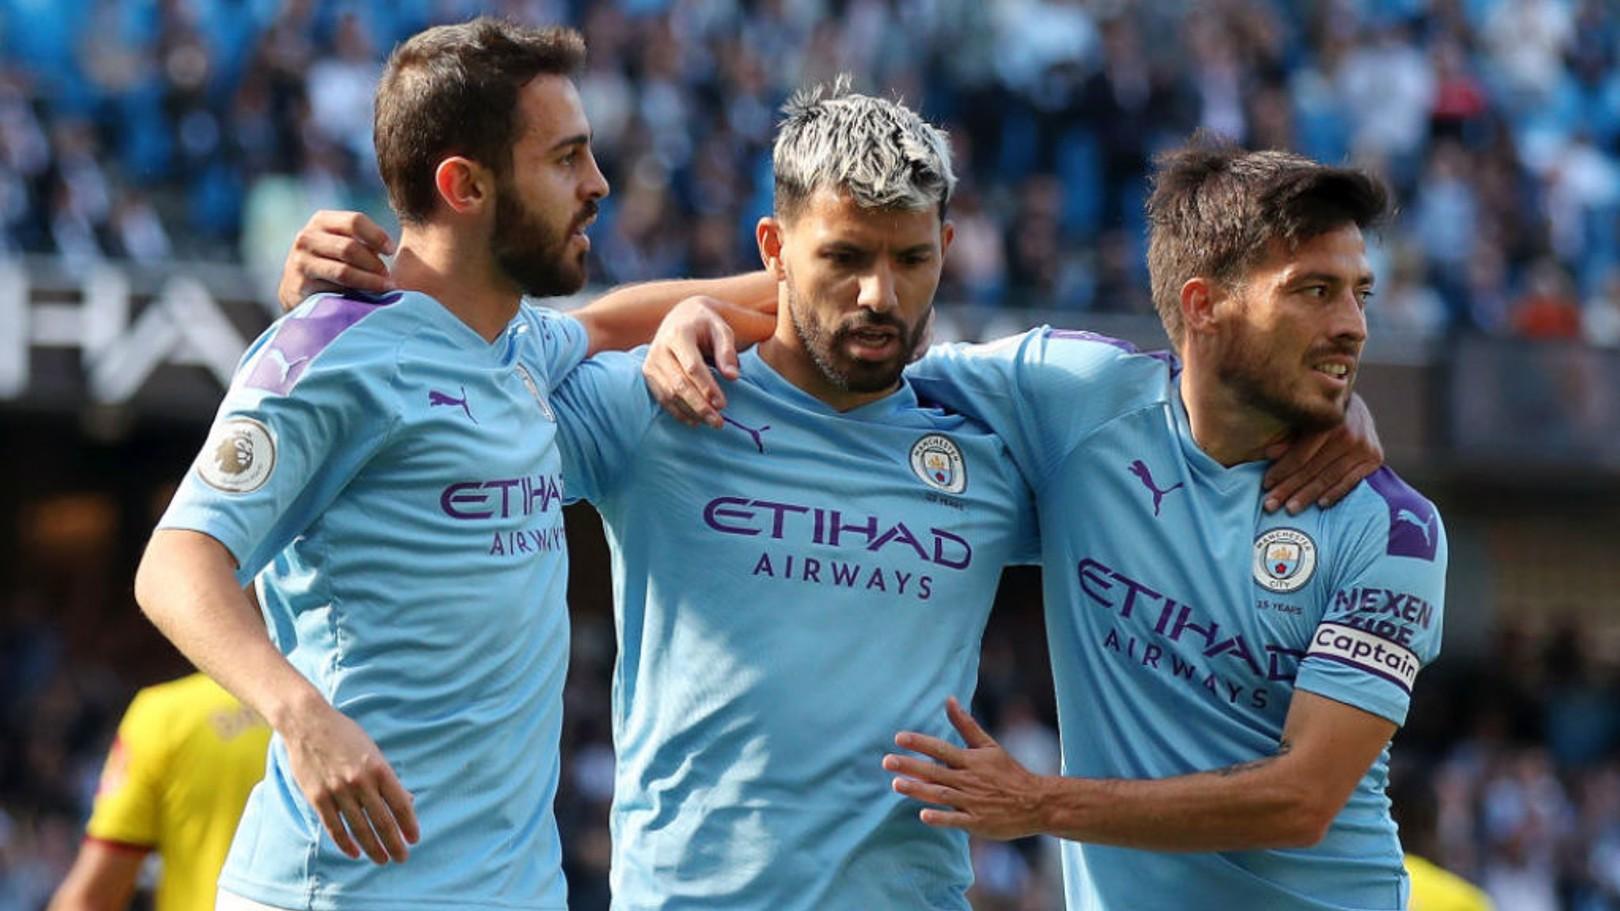 CENTRE OF ATTENTION: Bernardo and David Silva salute Sergio Aguero after his 100th goal at the Etihad